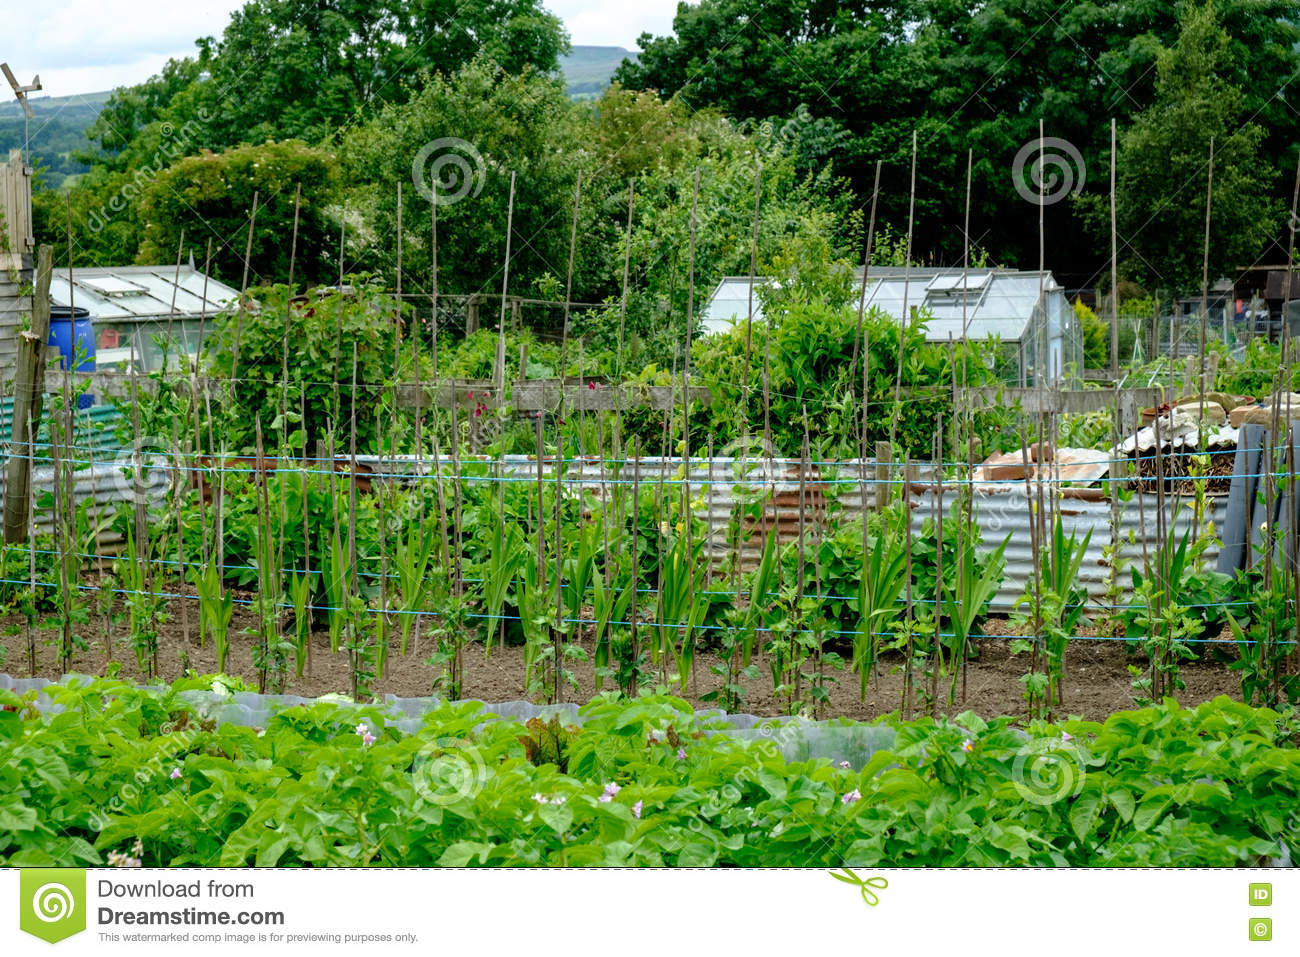 Allotments In UK, Vegetable Gardens Stock Image - Image of ...